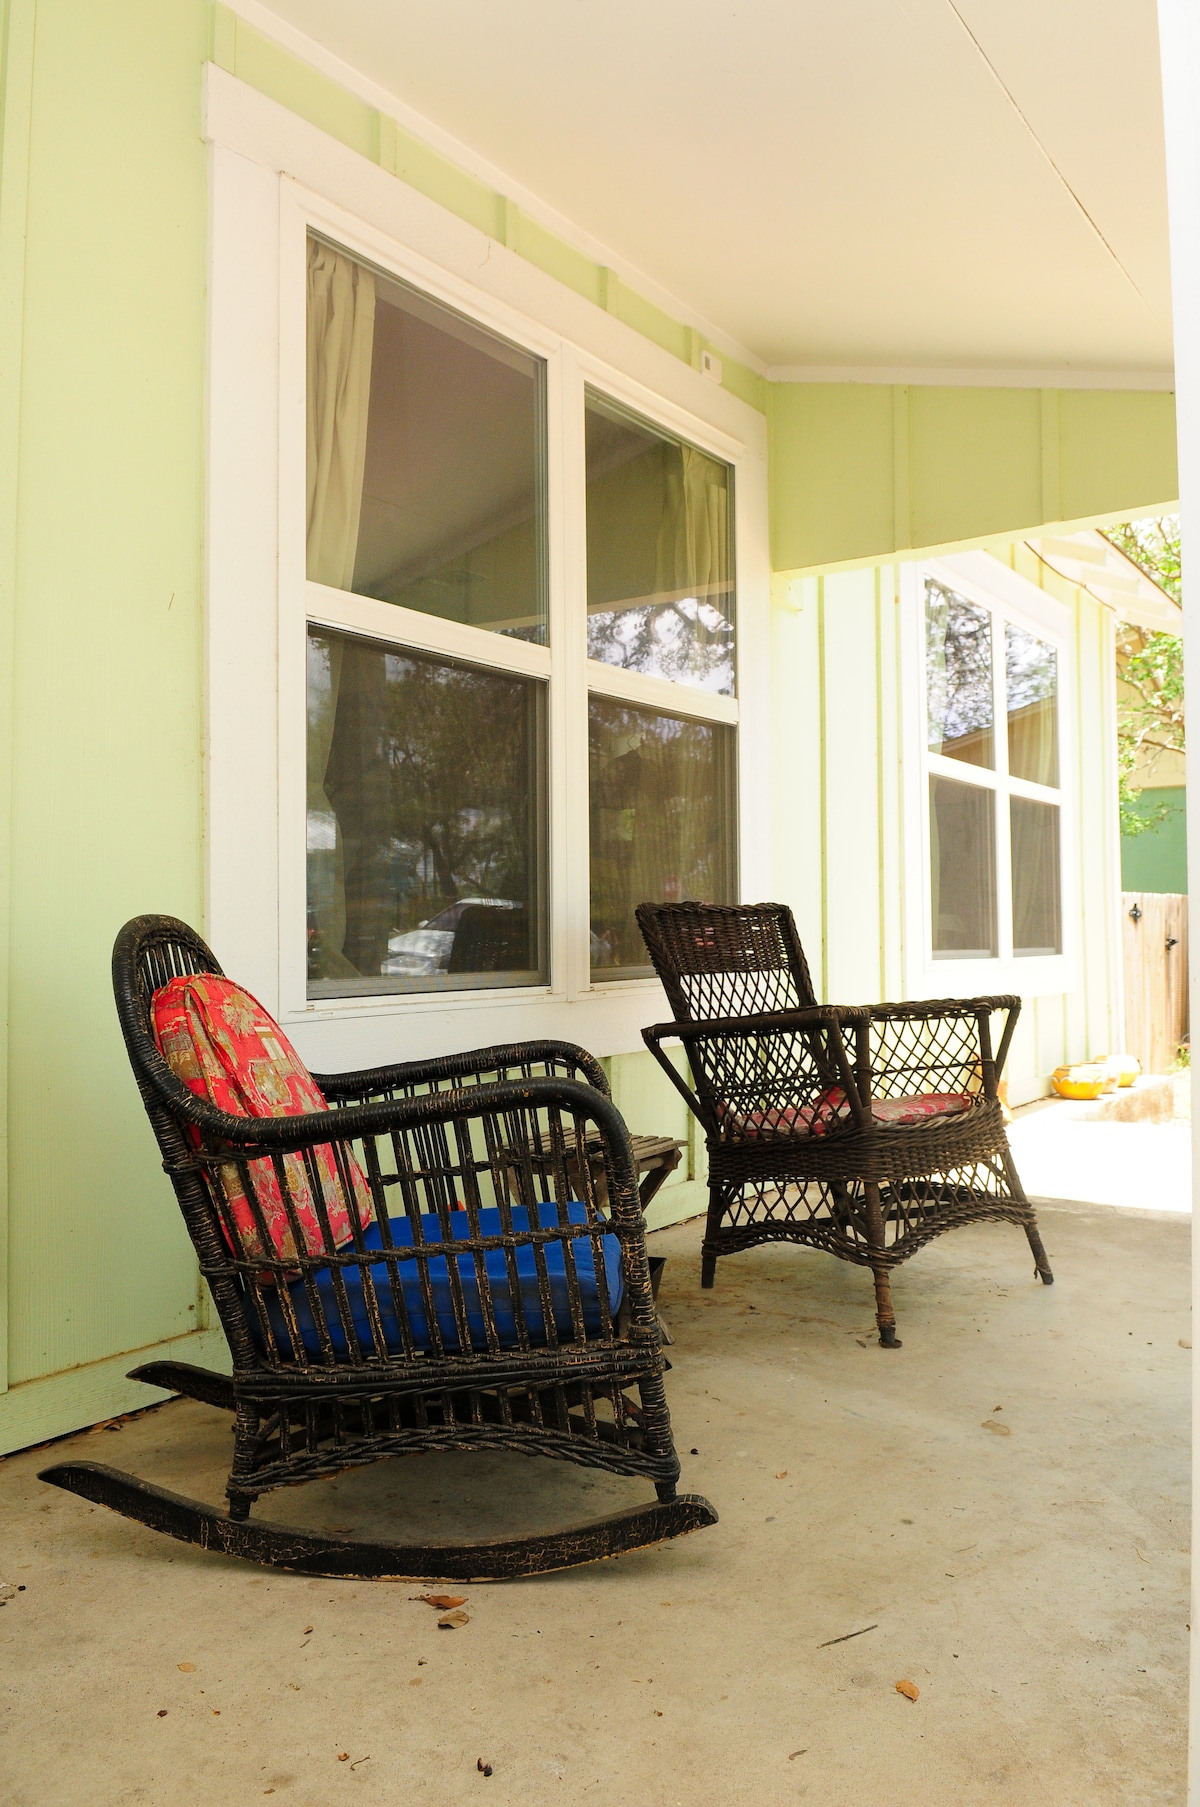 Enjoy the front porch in the cool mornings or evenings.